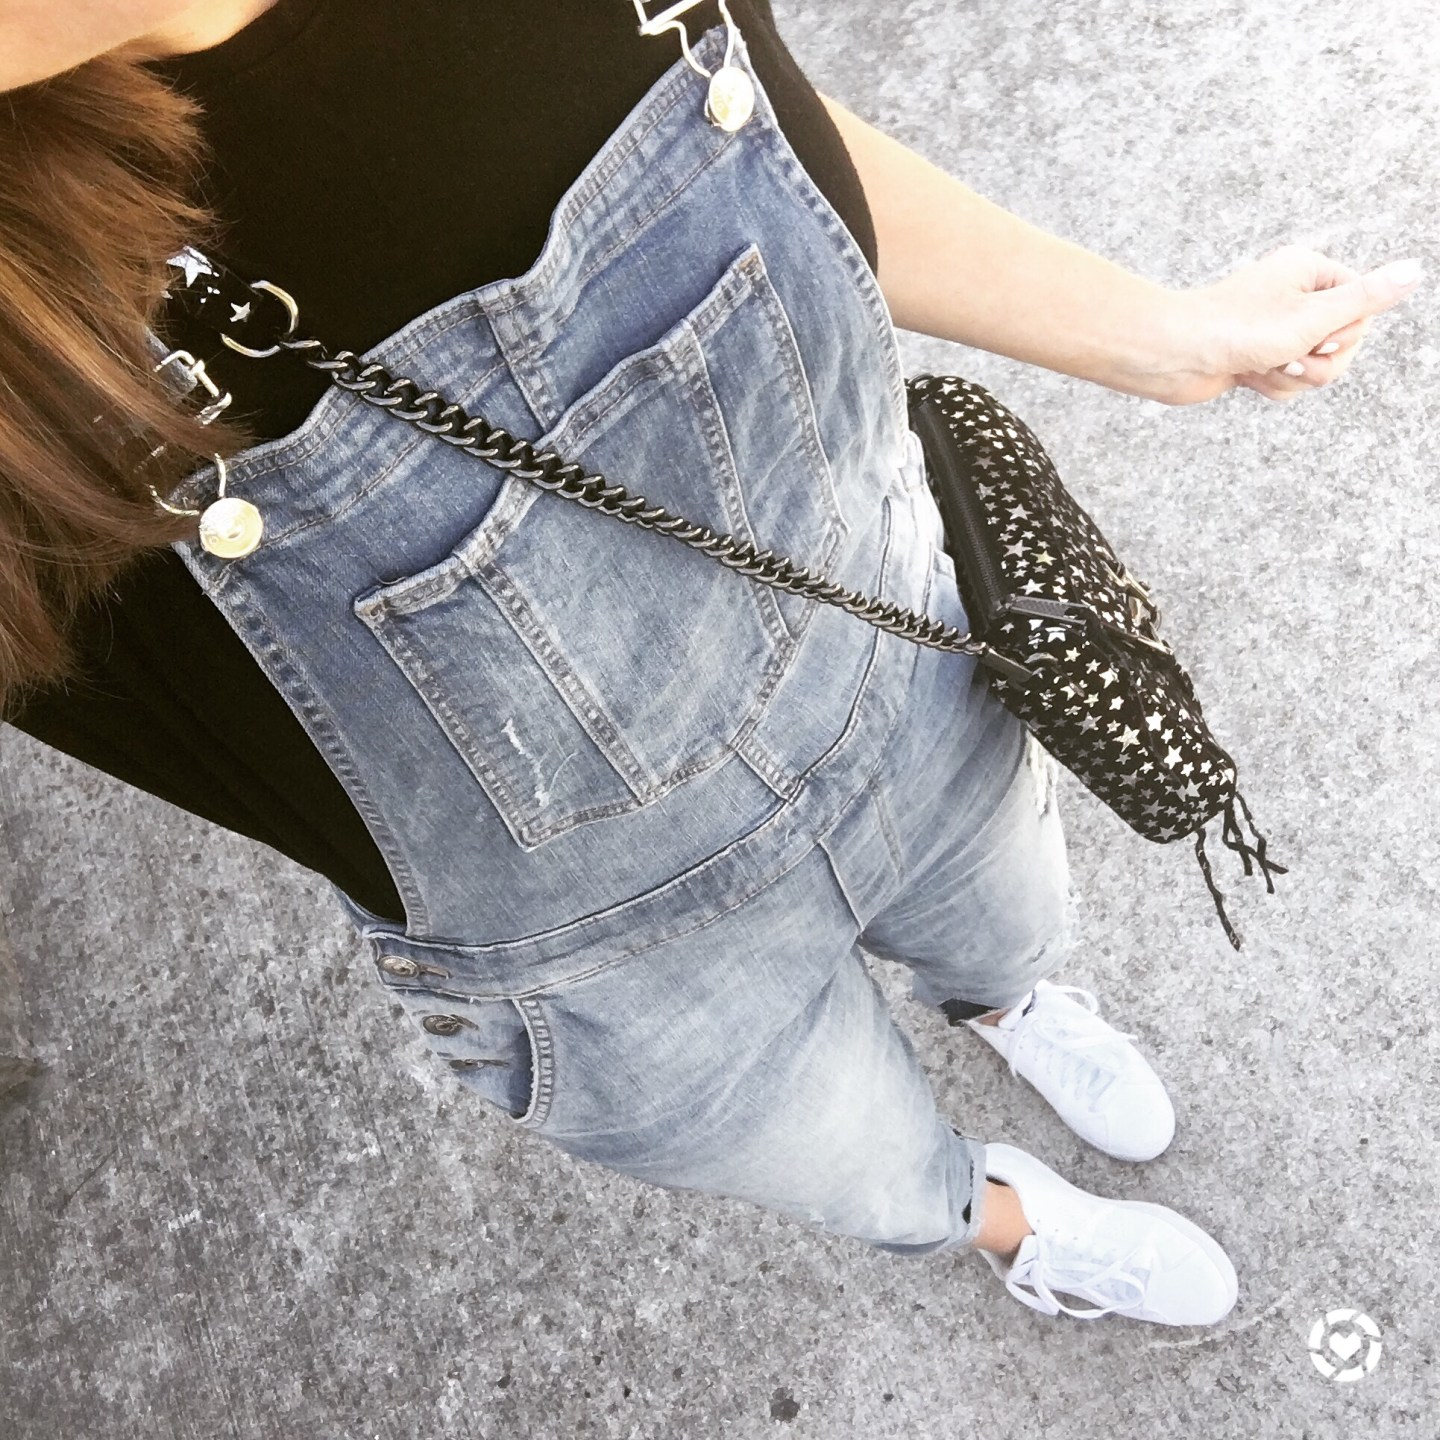 fall-fashion-how-to-wear-overalls-as-a-grown-up-life-lately-instagram-behind-the-scenes-falling-for-fall-fall-sales